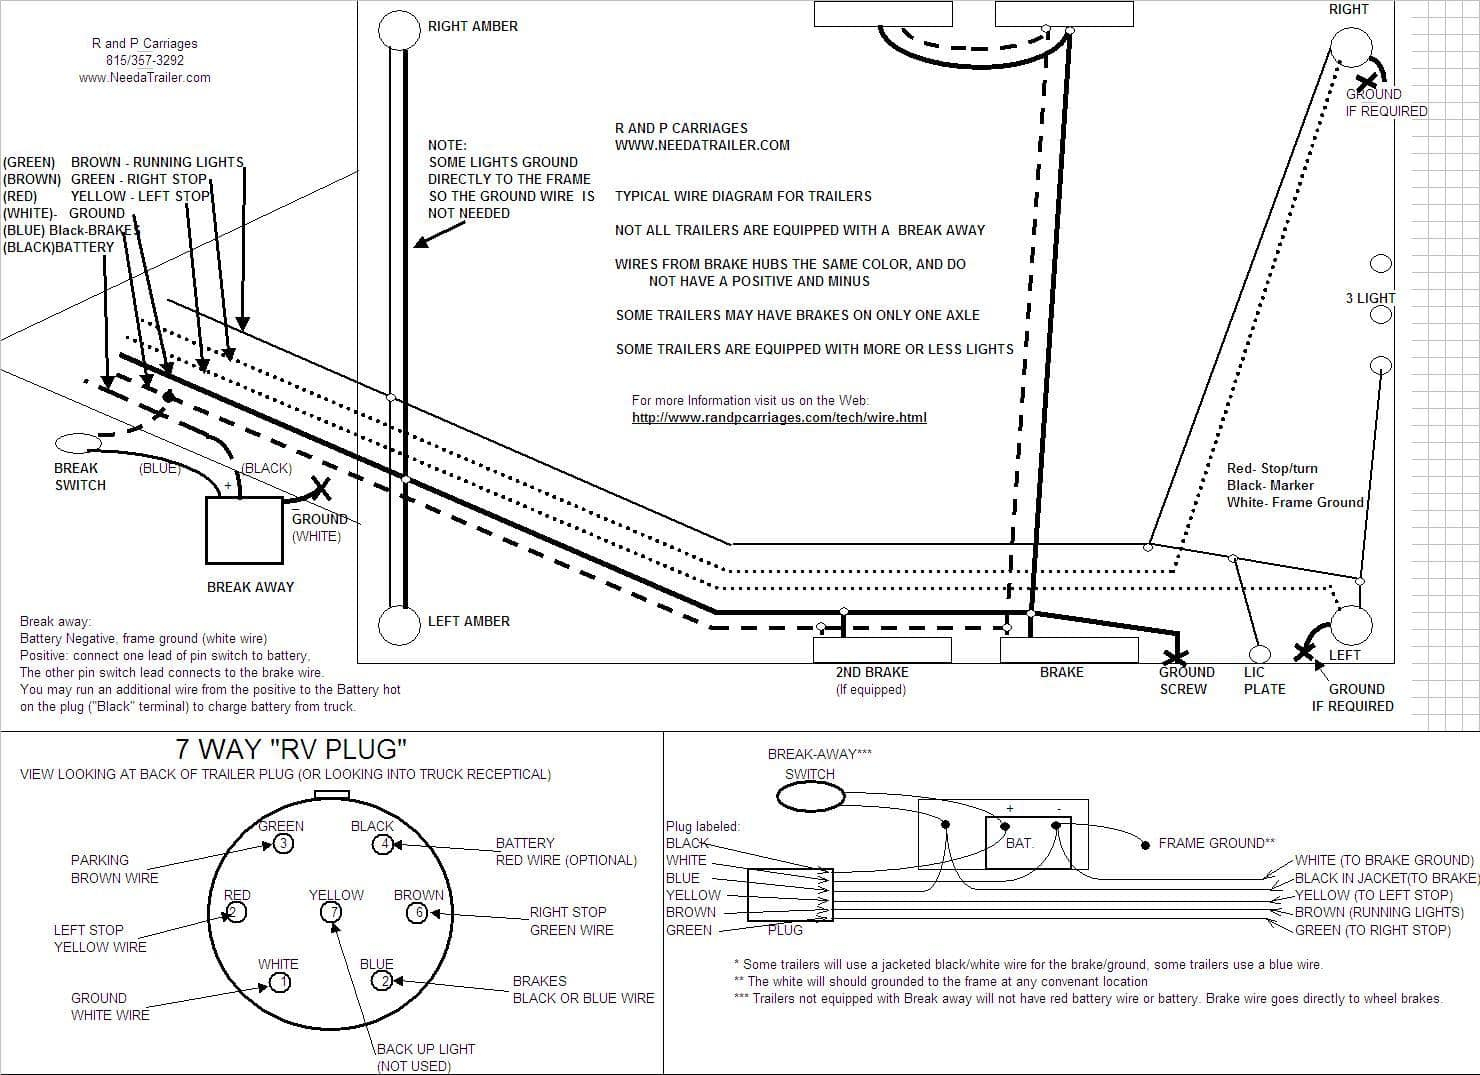 7 Way Plug Information   R And P Carriages   Cargo, Utility, Dump - 7 Conductor Trailer Wiring Diagram